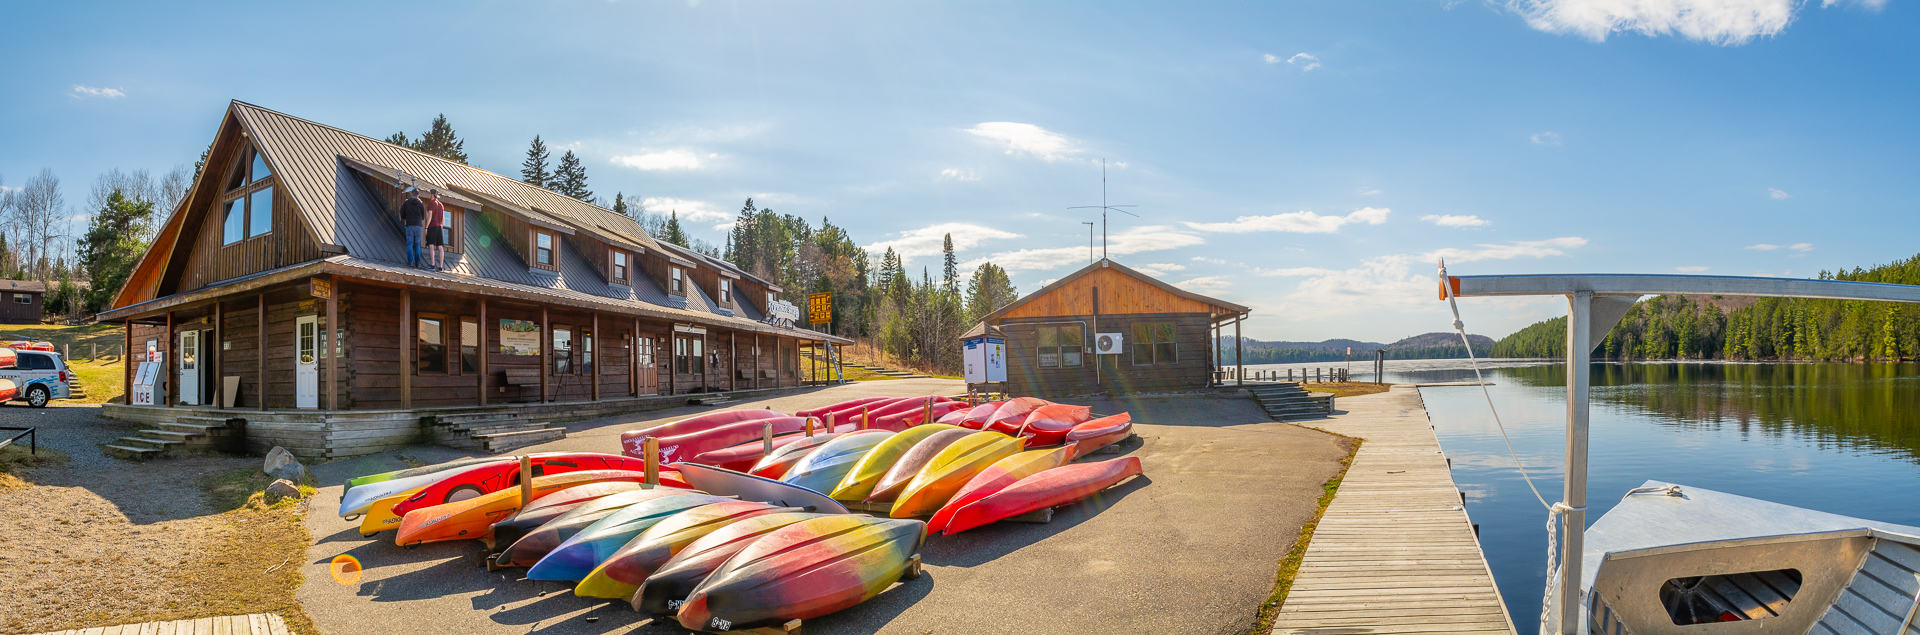 Algonquin Outfitters, Lake Opeongo